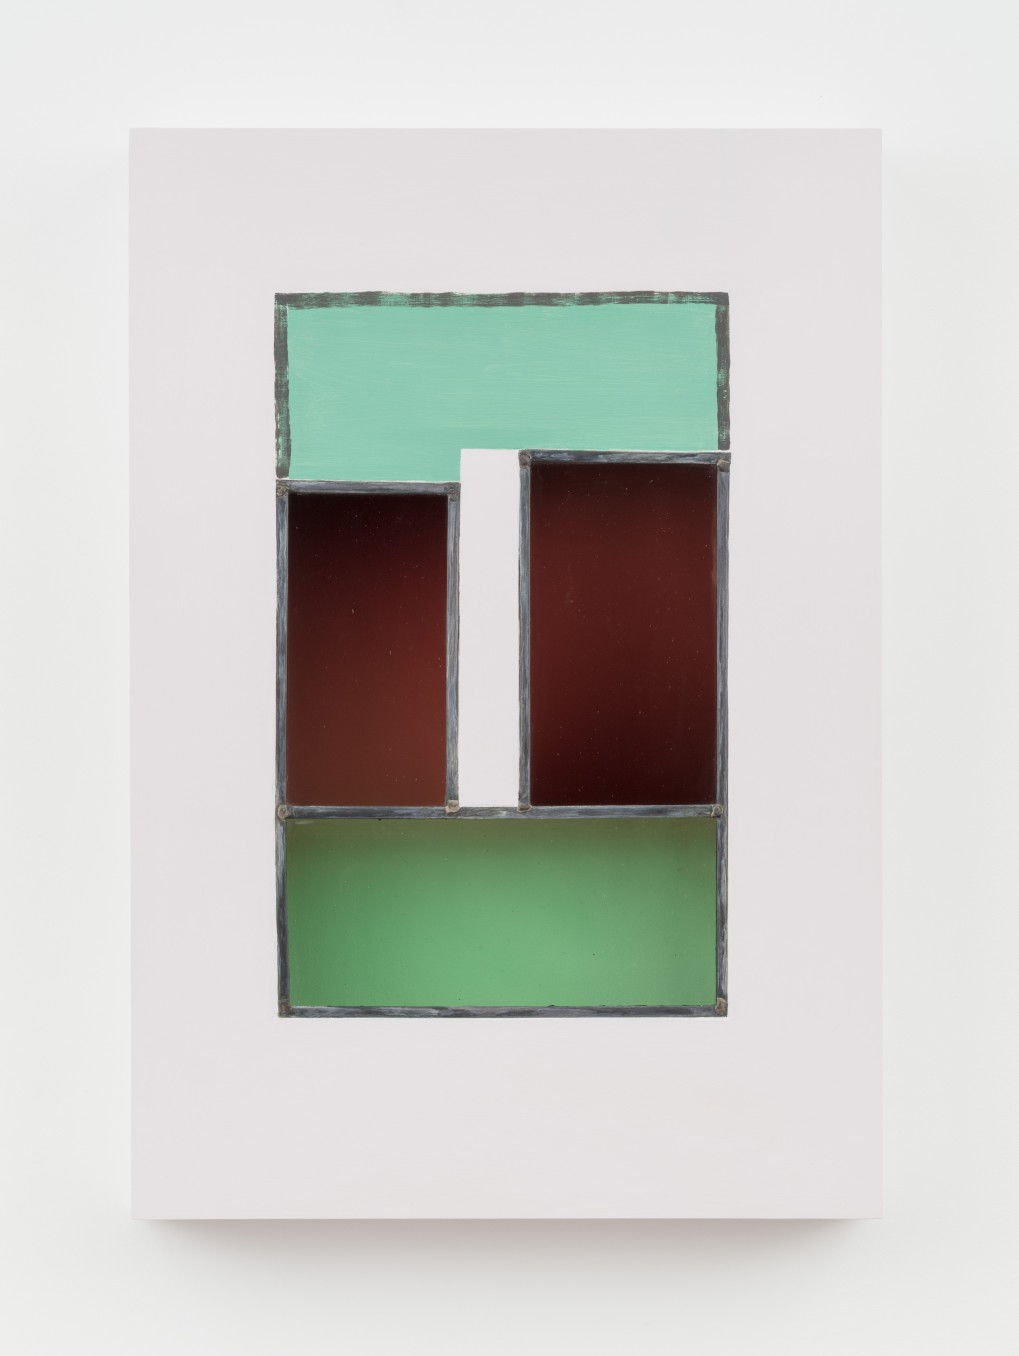 Jessica Warboys, HOUR III, 2019, Acrylic, antique glass, lead came, plywood, 87 x 59.7 x 8.9 cm, 34 1/4 x 23 1/2 x 3 1/2 in